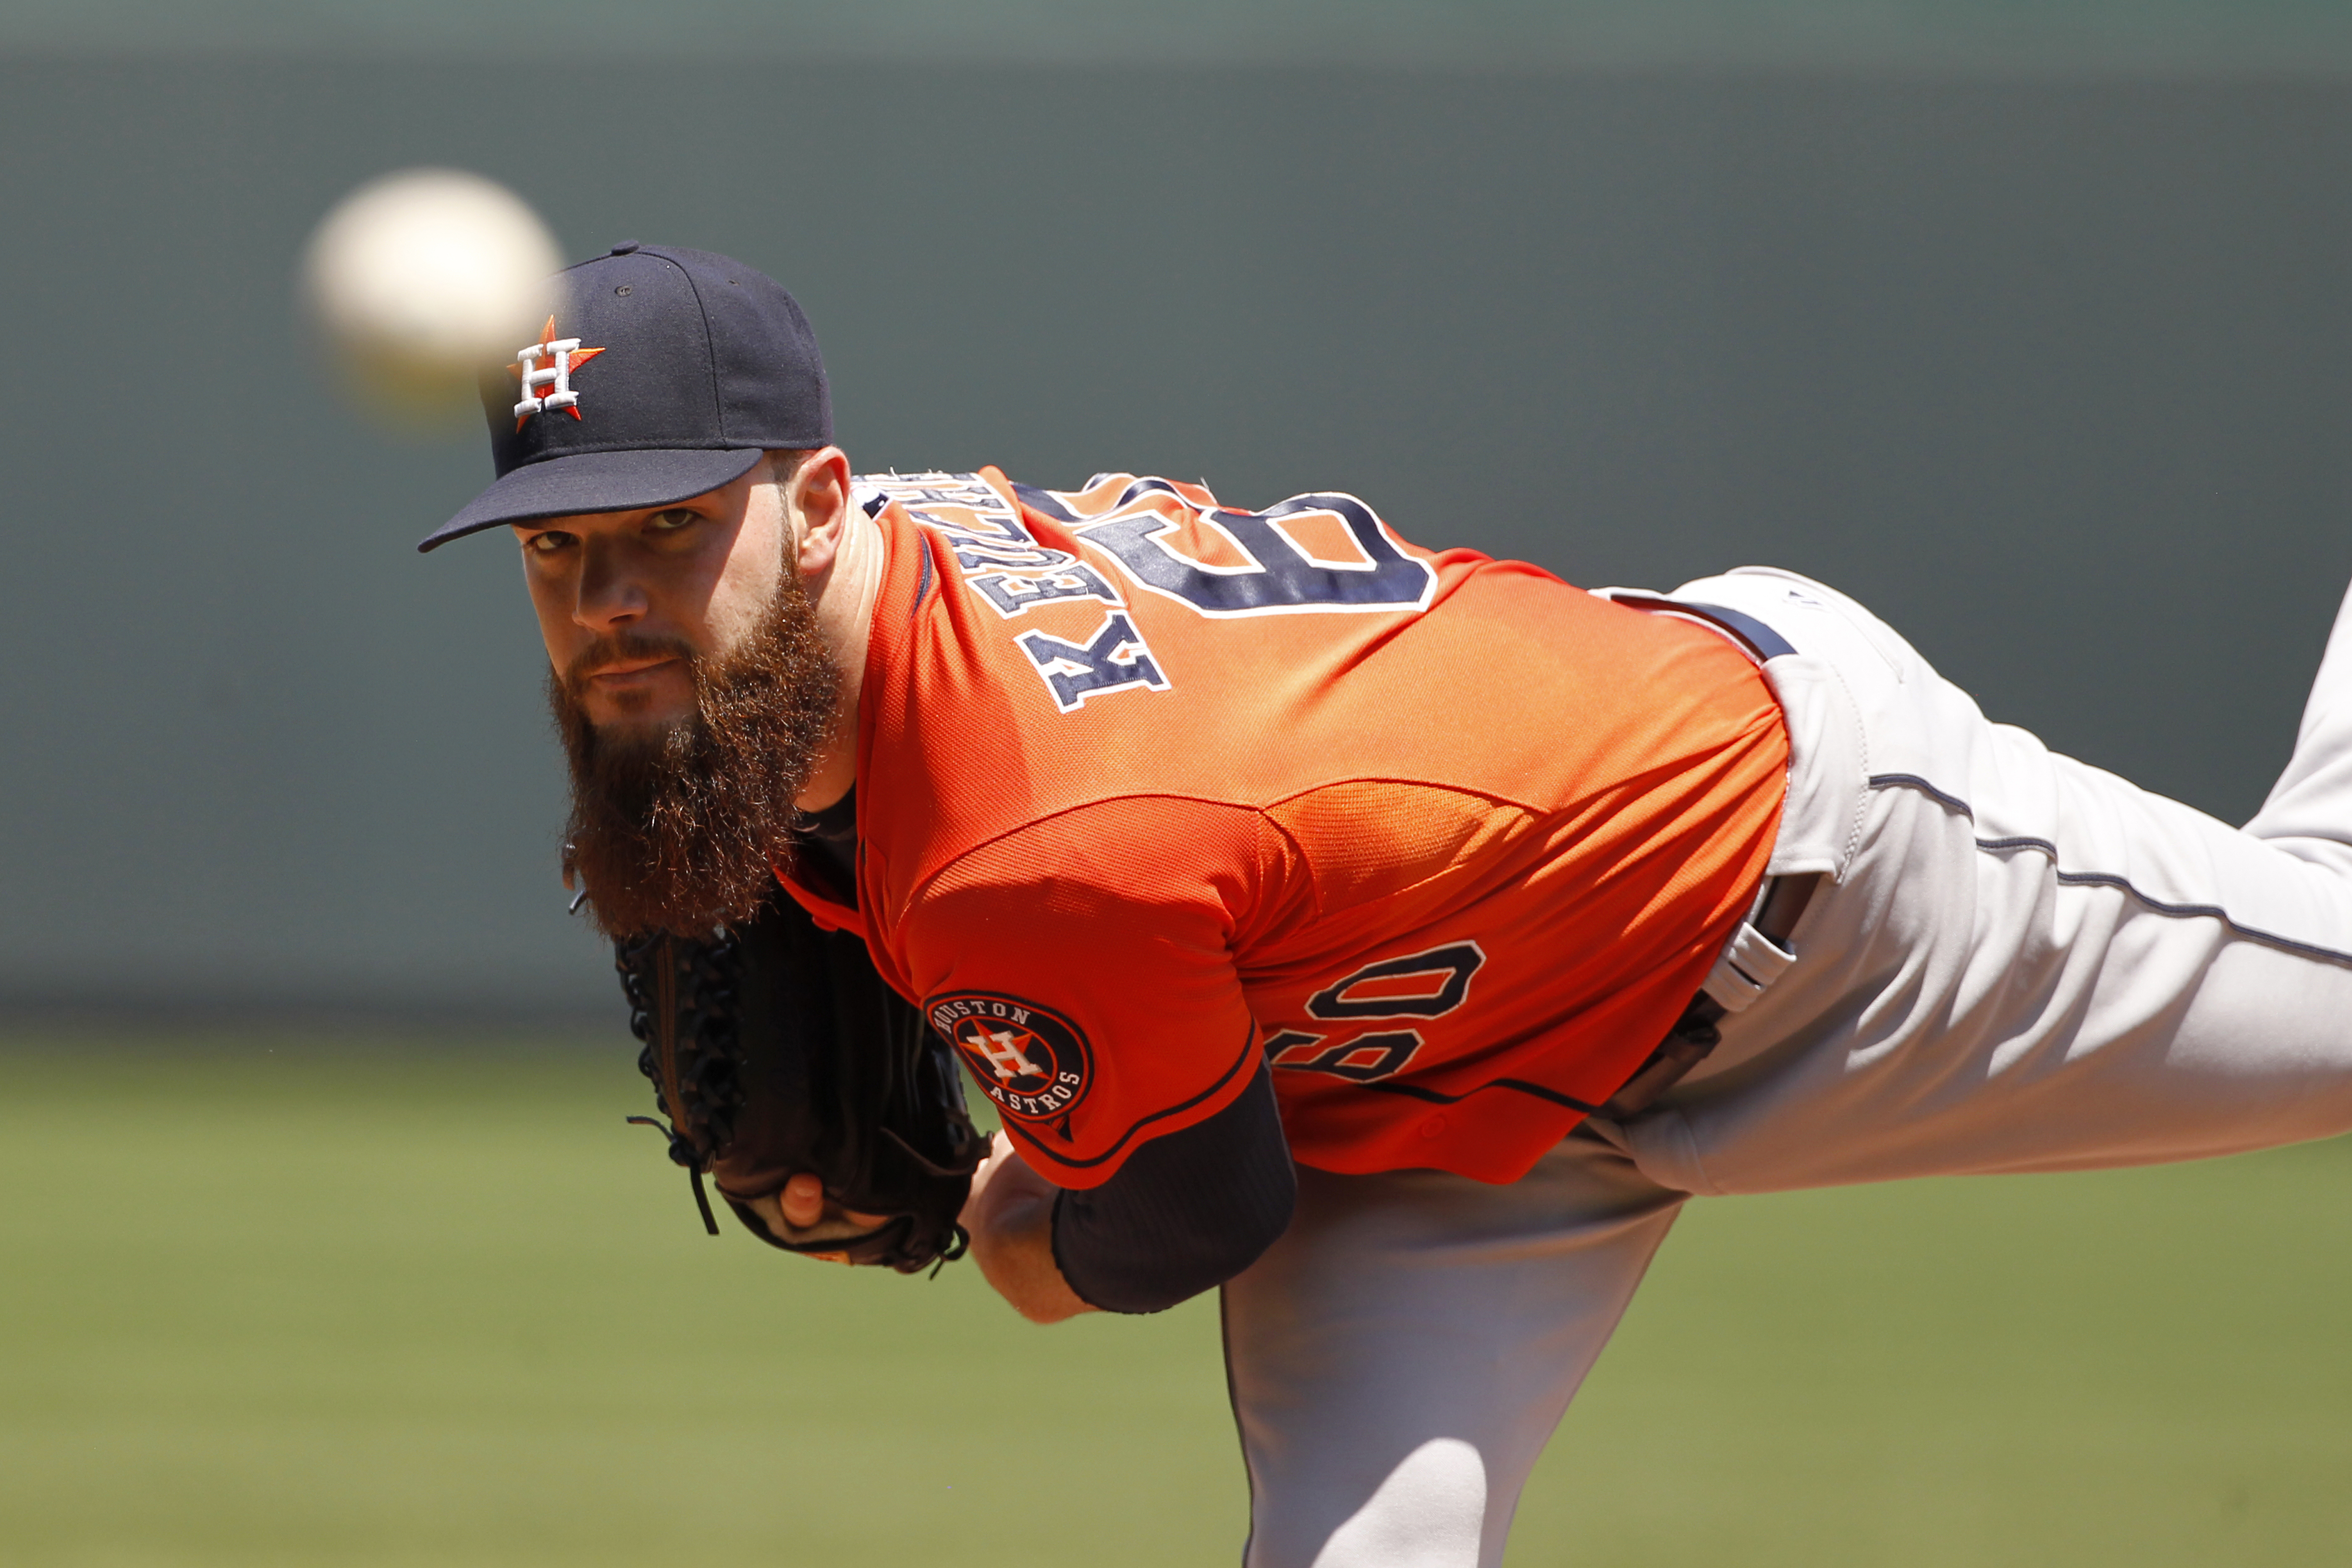 Houston Astros pitcher Dallas Keuchel warms up in the first inning of a baseball game against the Kansas City Royals in Kansas City, Mo., Friday, July 24, 2015. (AP Photo/Colin E. Braley)